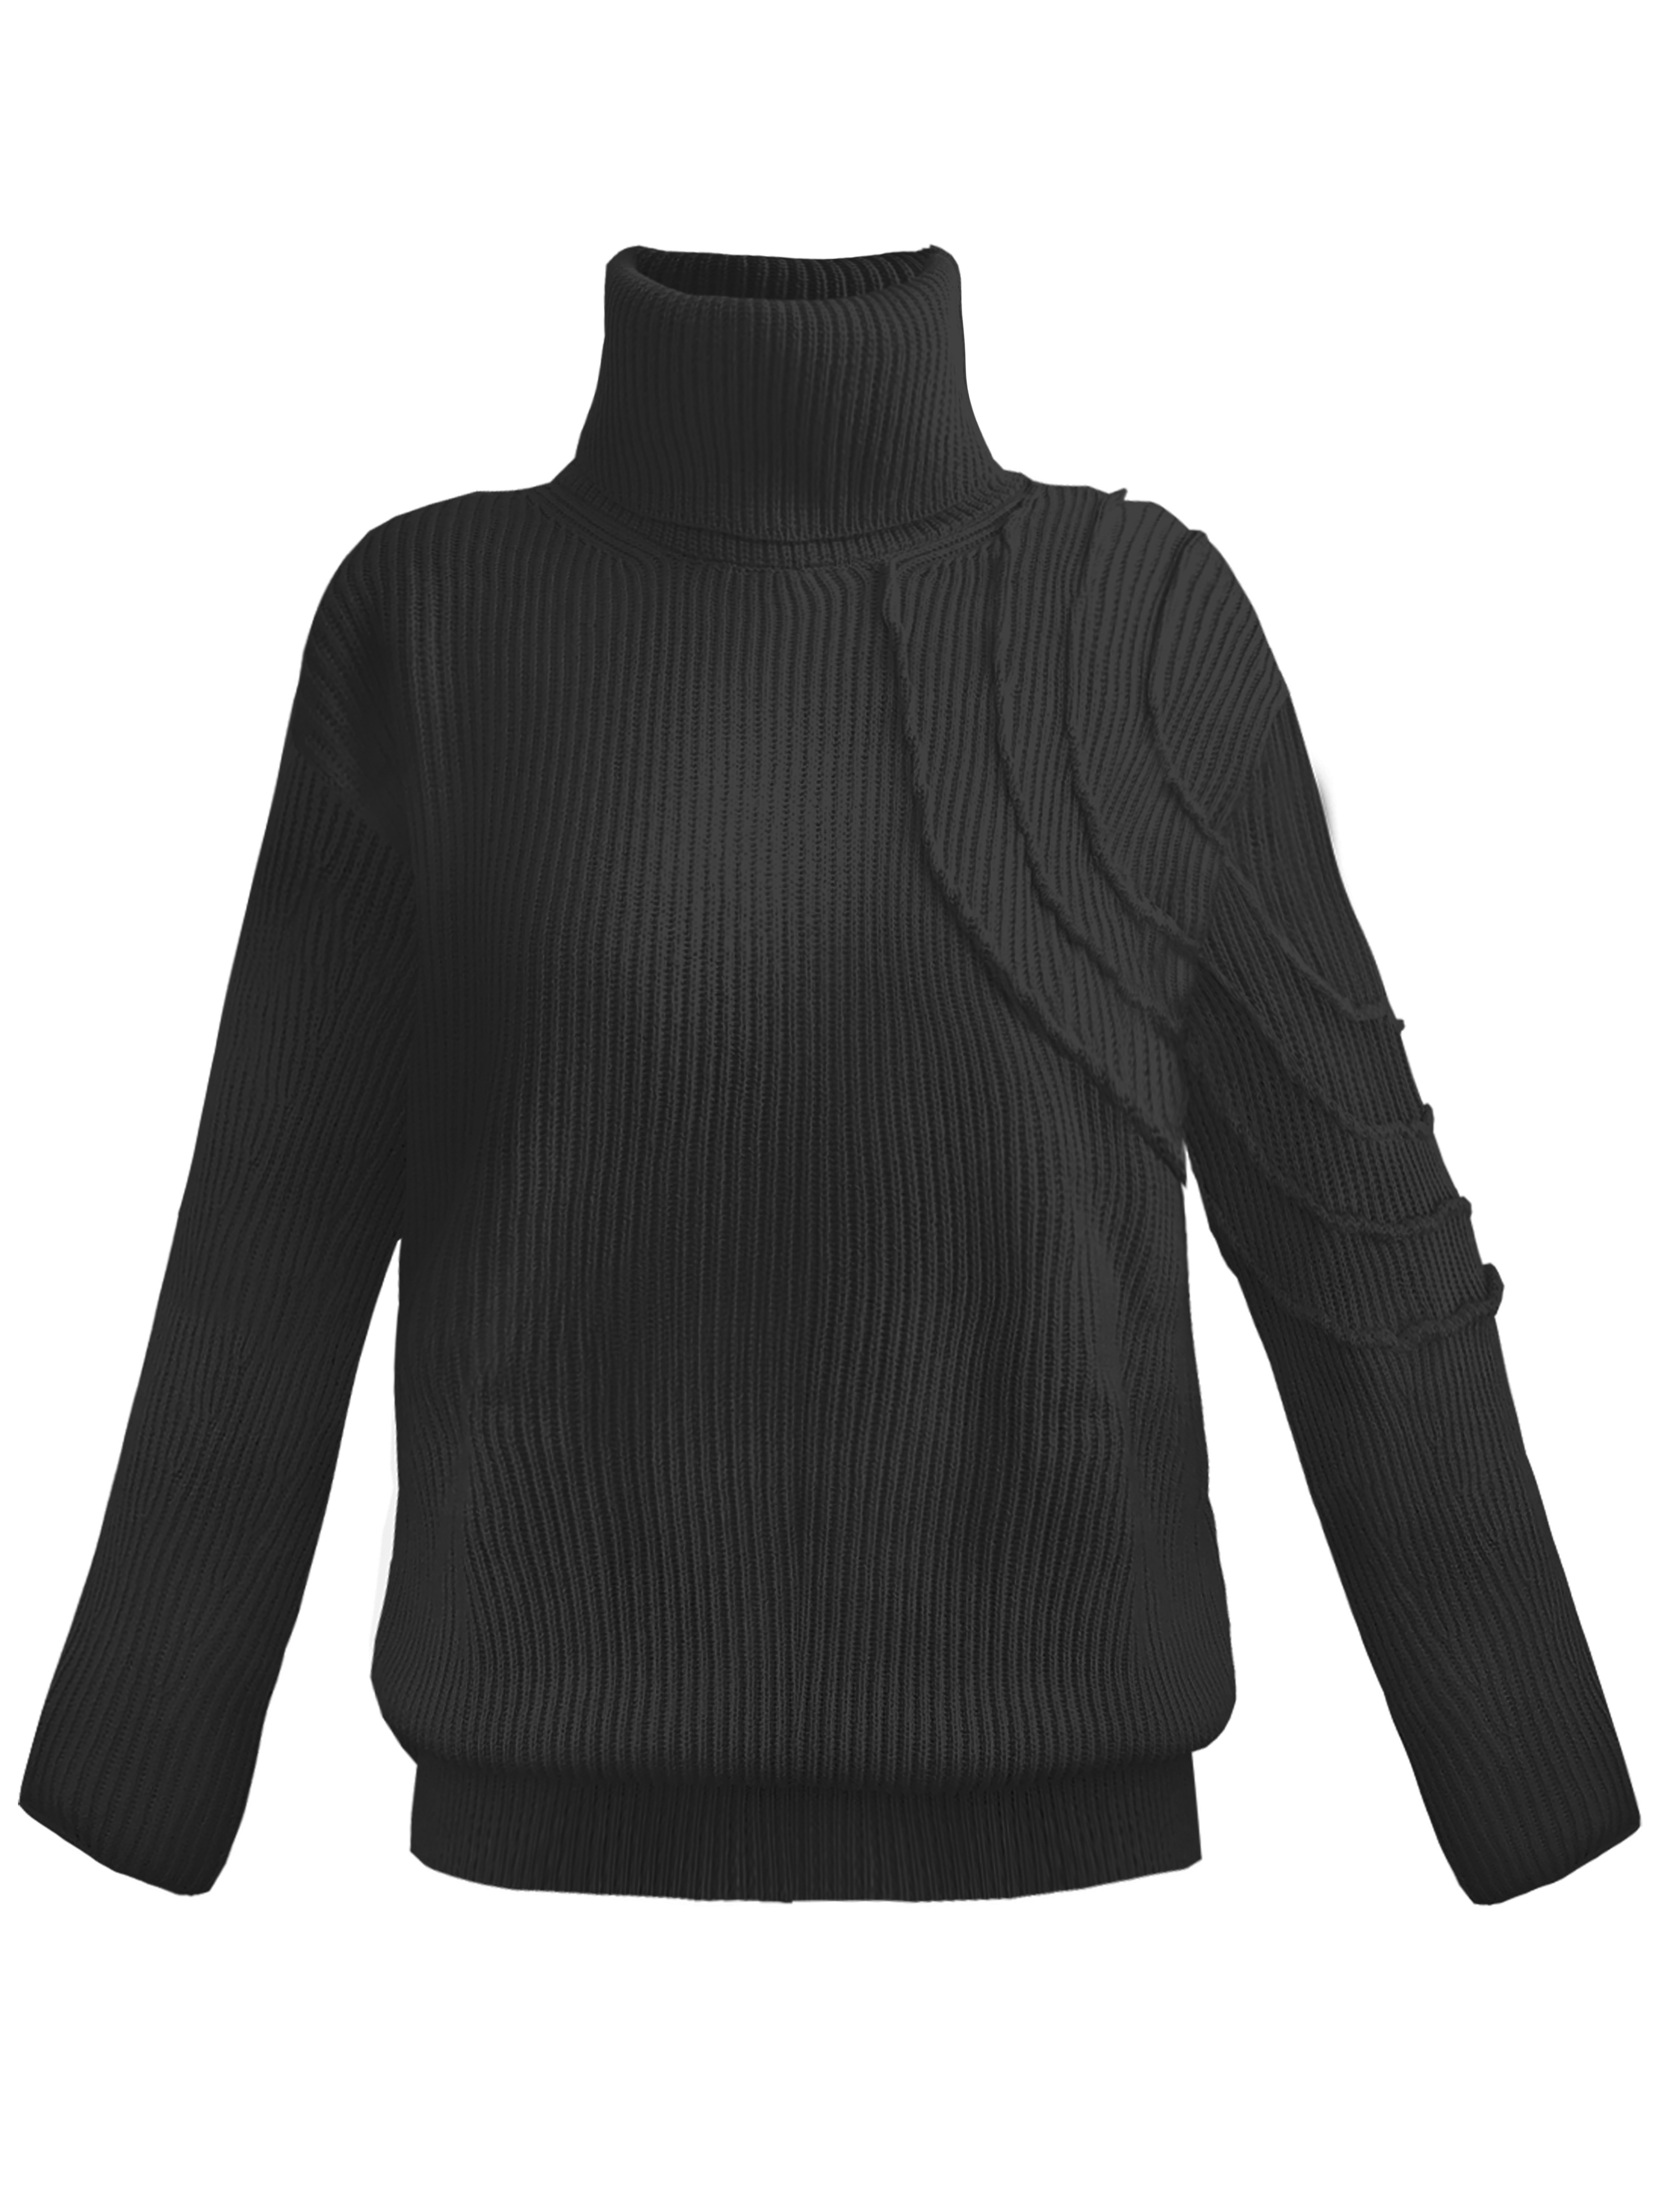 Lucid Turtleneck by Georgia Hardinge on curated-crowd.com